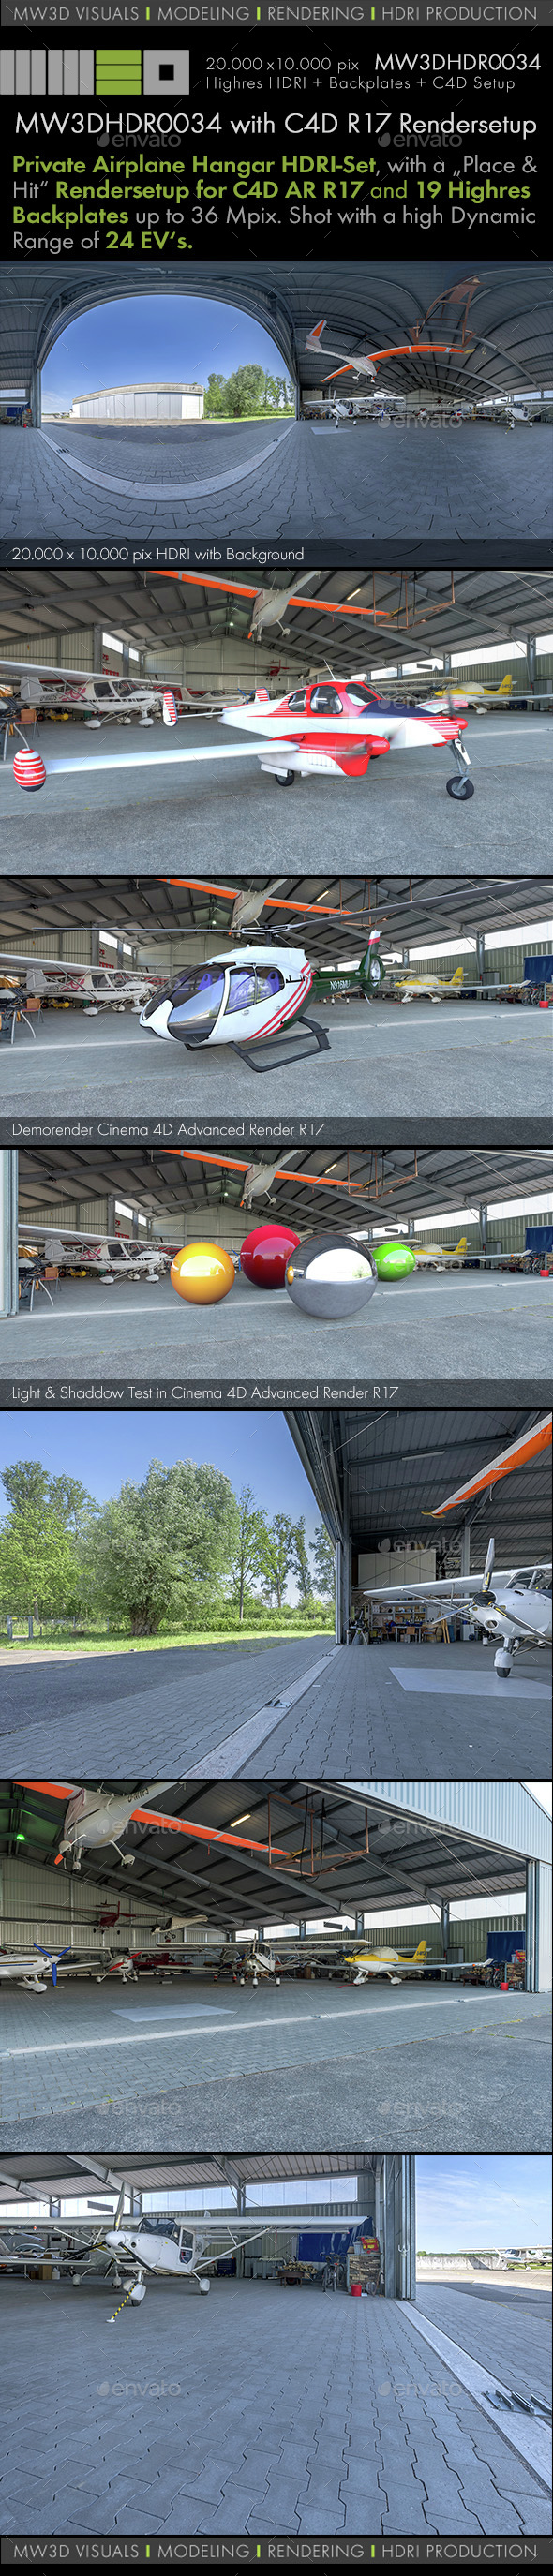 MW3DHDR0034 Aviation-Shop / Airplane Hangar HDRI Set - 3DOcean Item for Sale